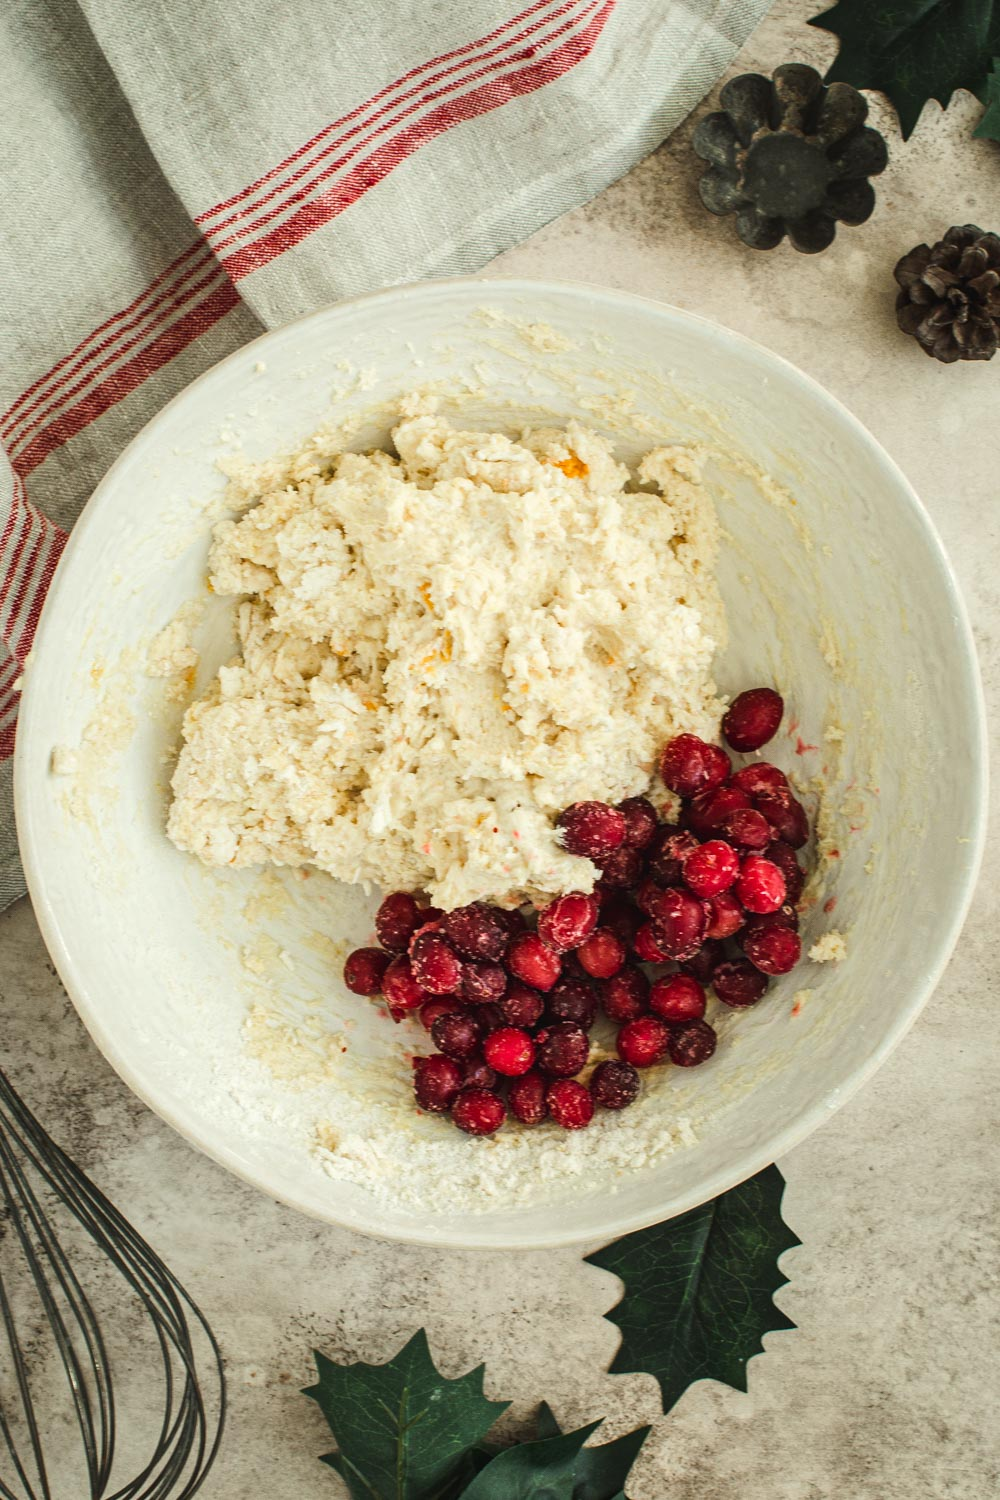 Scone dough with cranberries in white bowl.